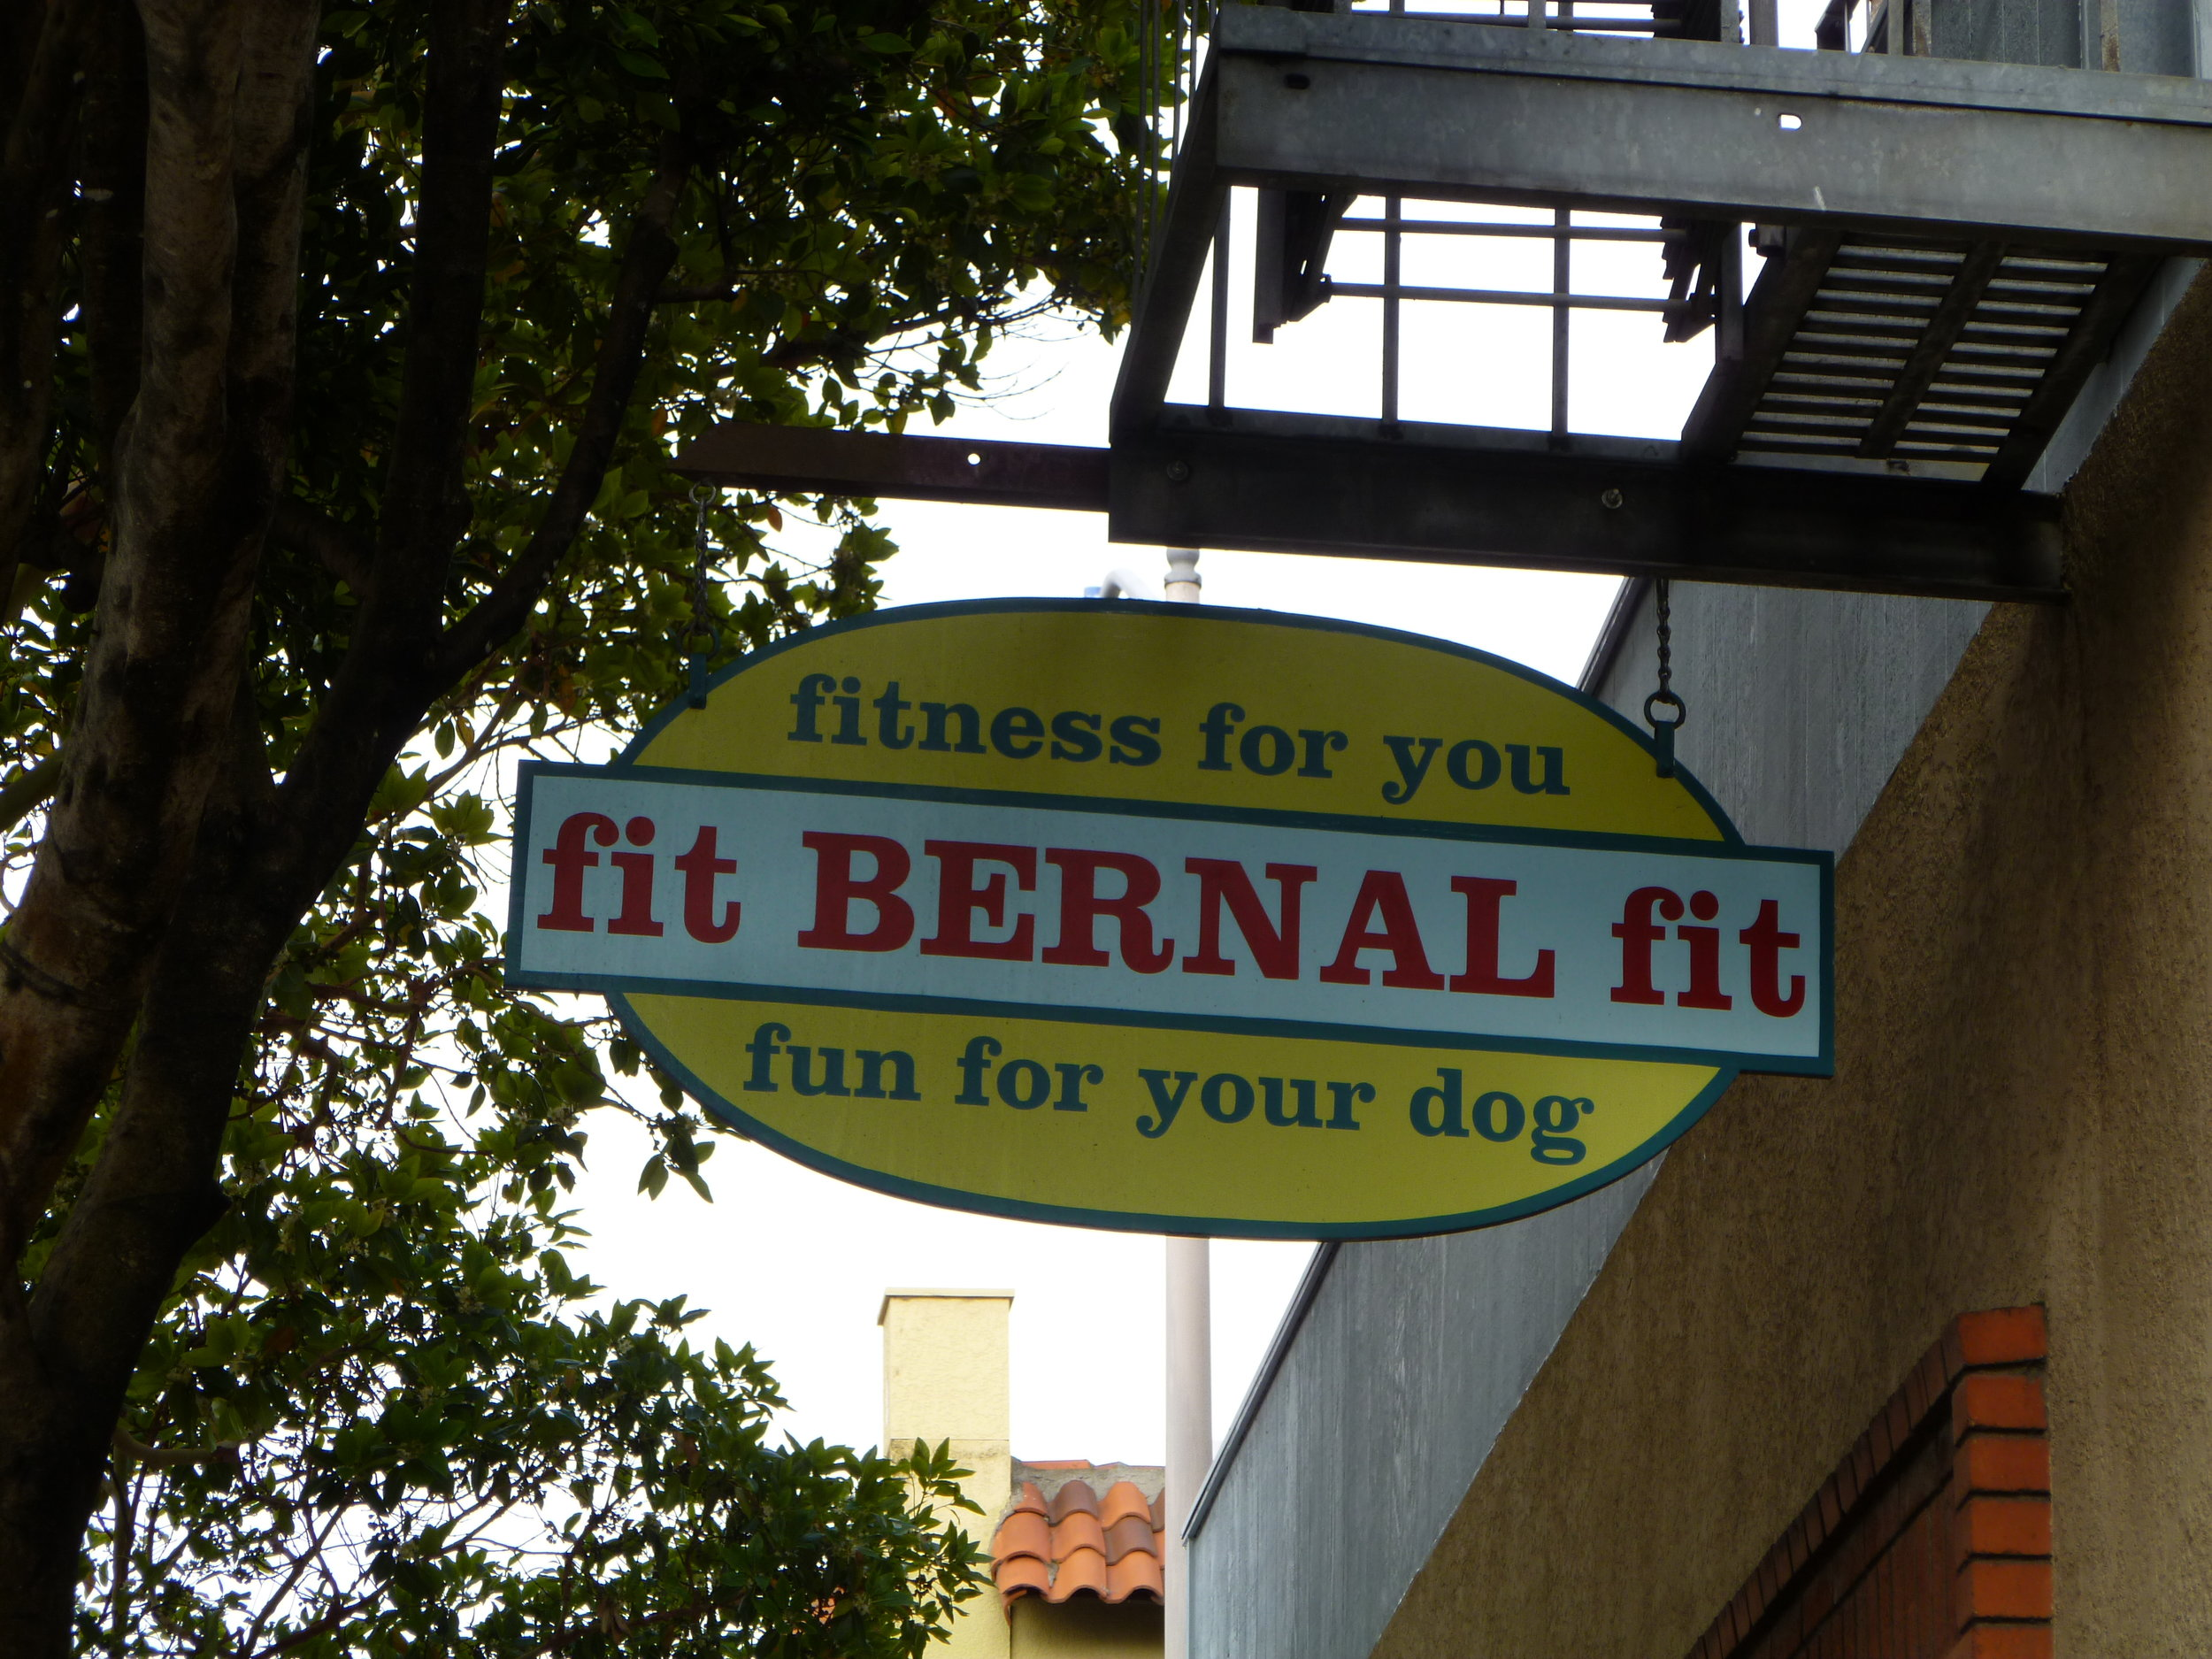 HAND-fit-bernal-fit-projecting-sign_5006177015_o.jpg